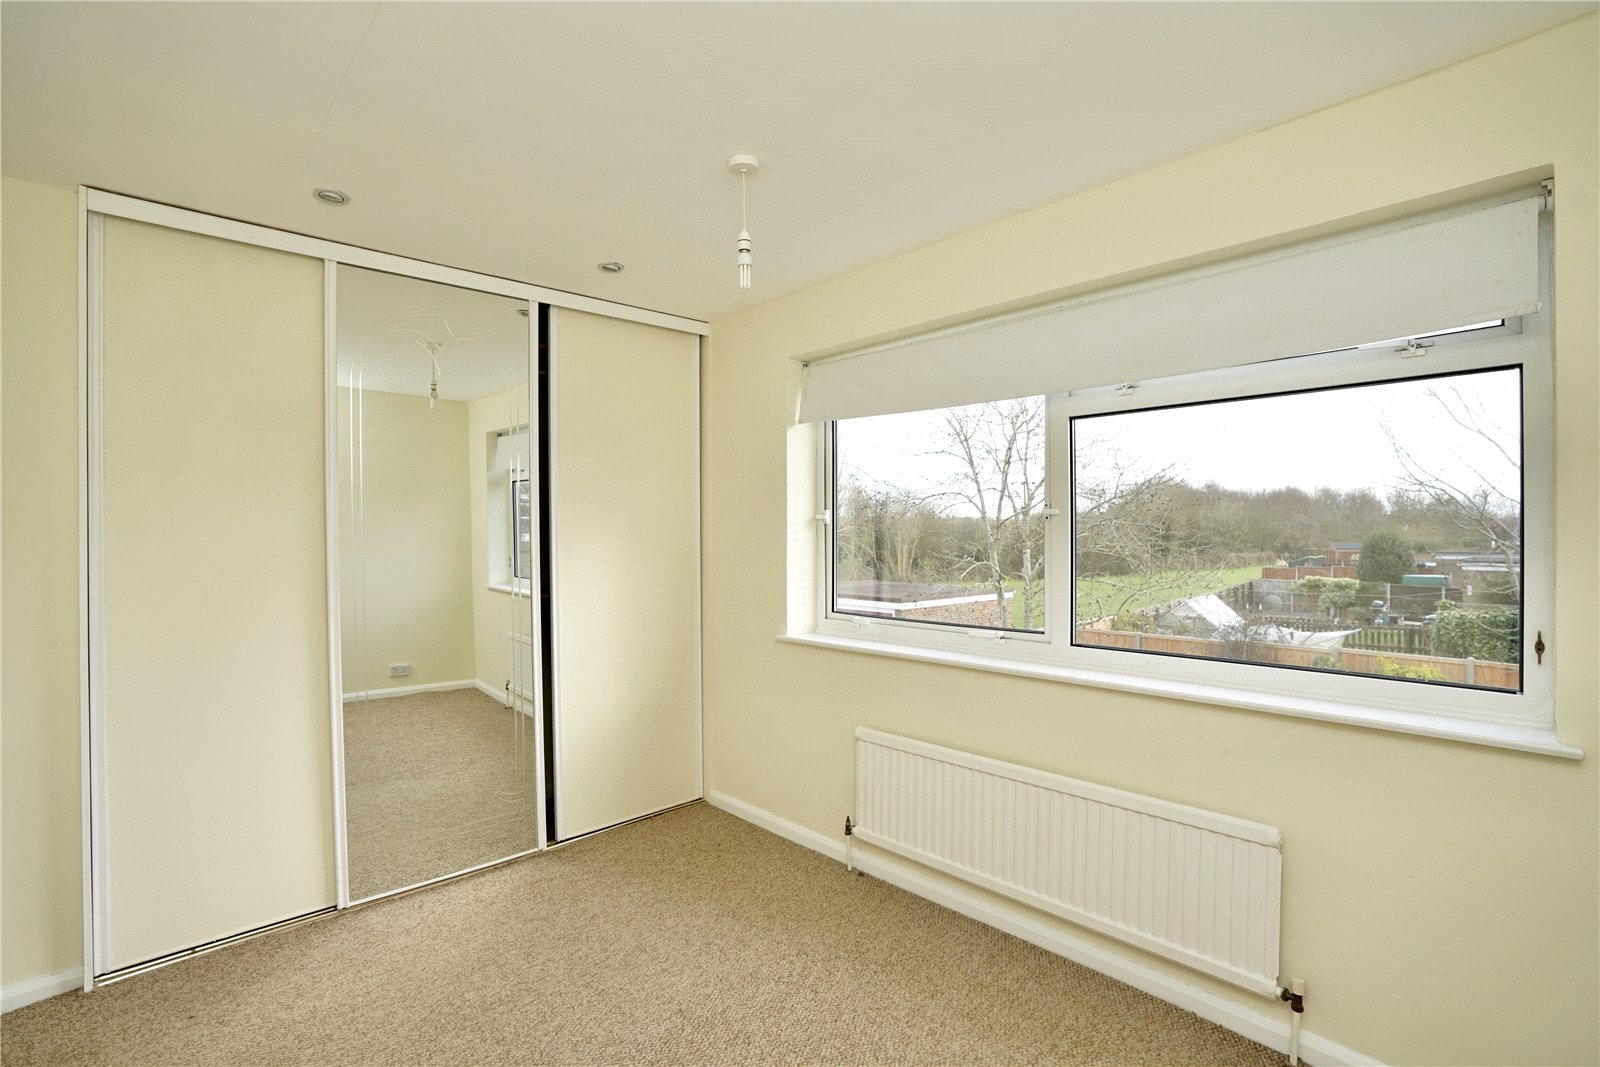 4 bed house for sale in Manor Close, Great Staughton  - Property Image 12